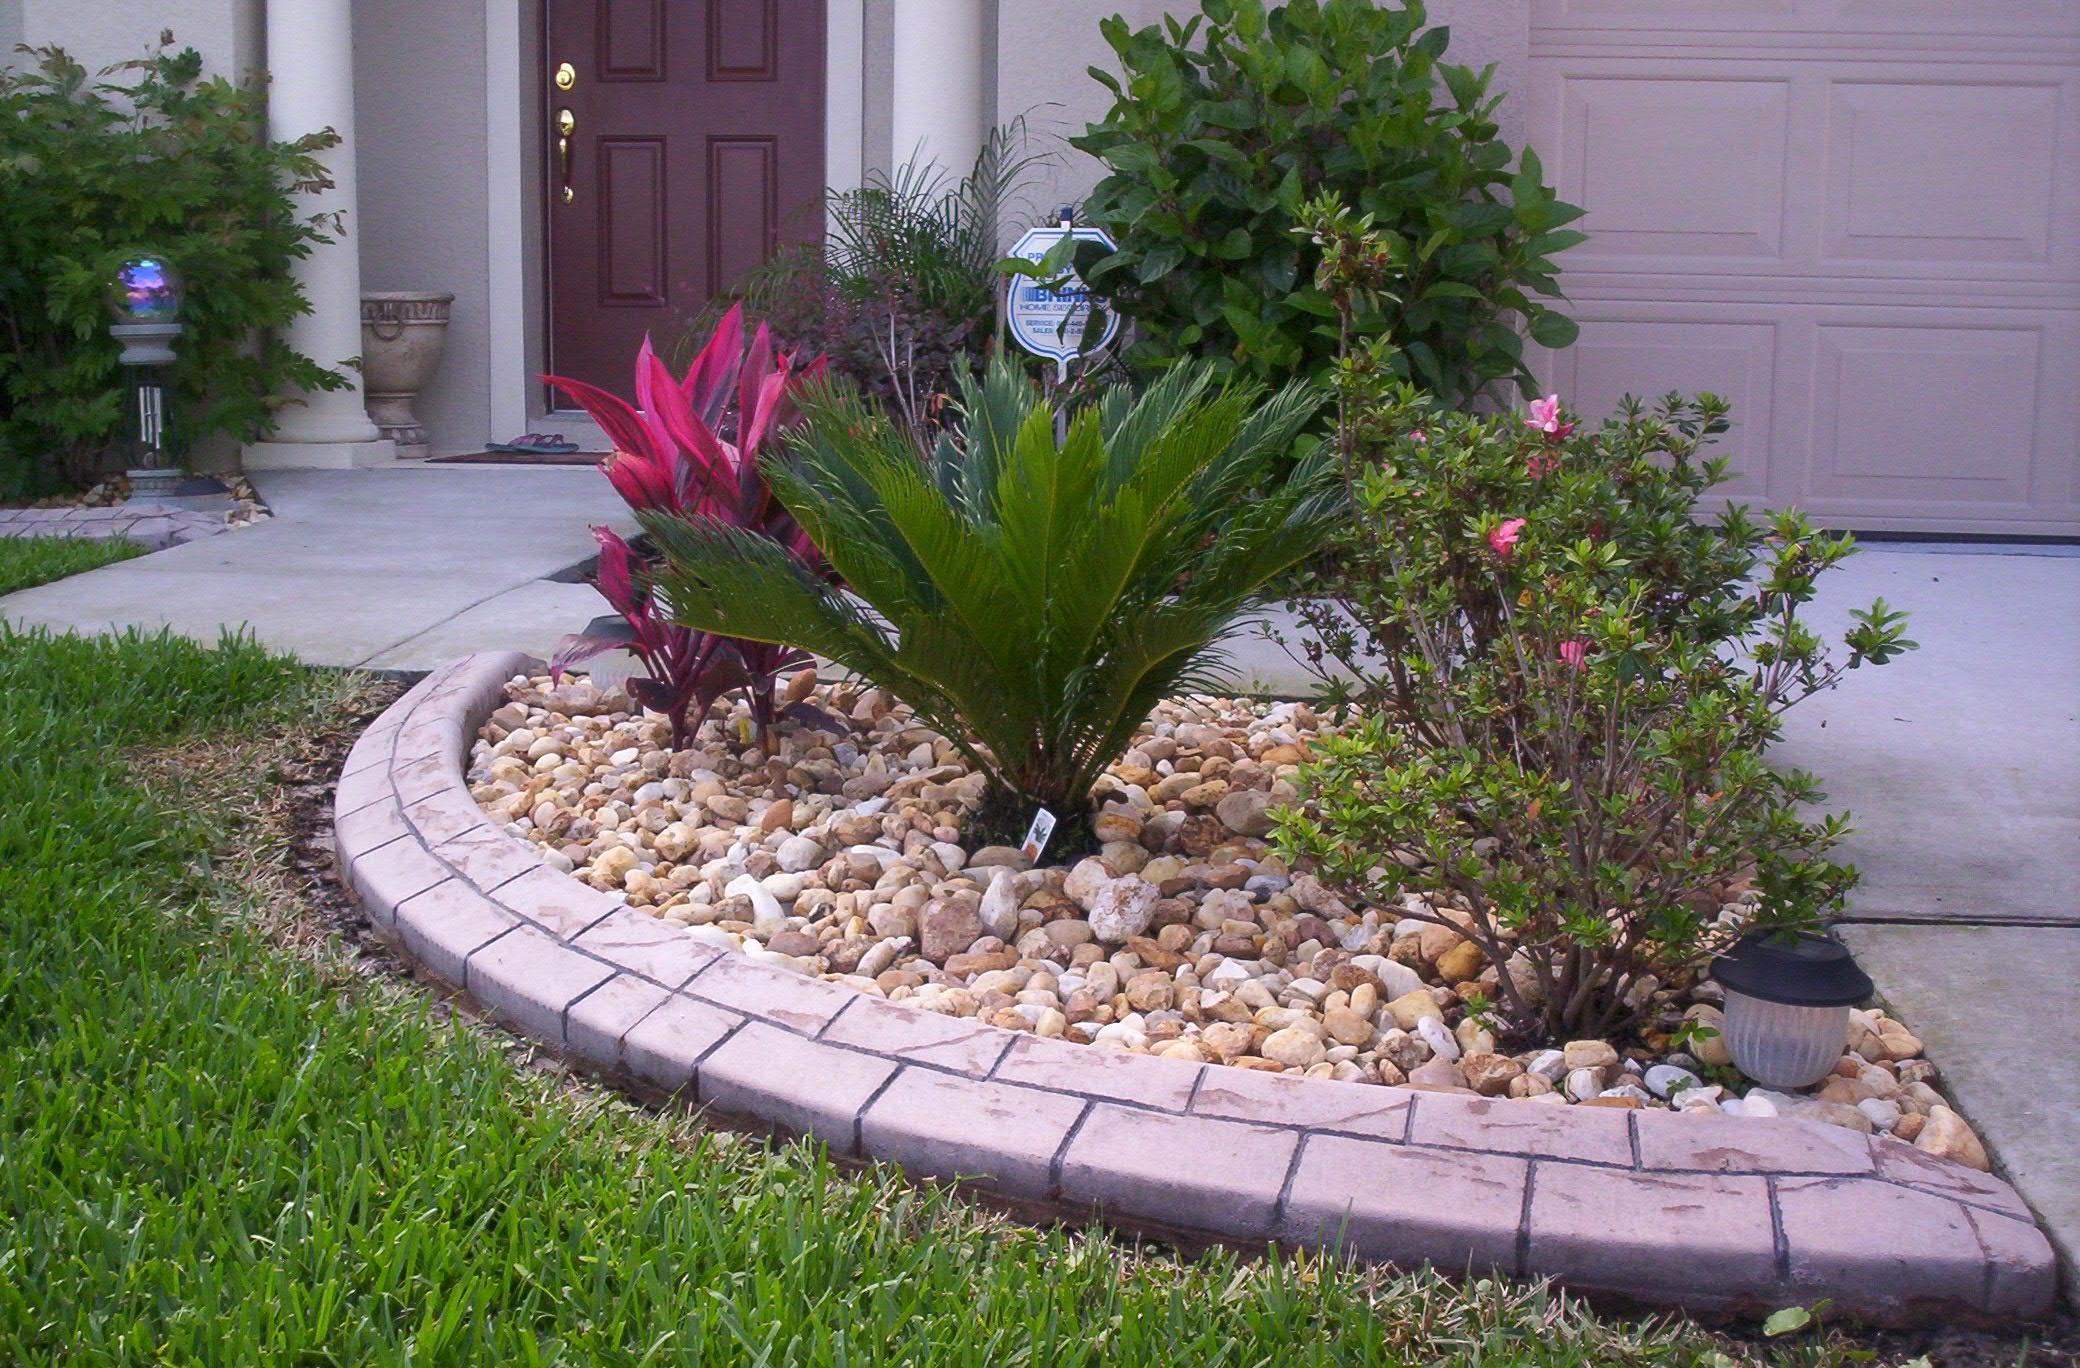 Create Solid Boundaries in Your Lawn and Garden with Home Depot Landscape Edging: Home Depot Landscape Edging | Steel Edging Lowes | Metal Landscape Edging Home Depot